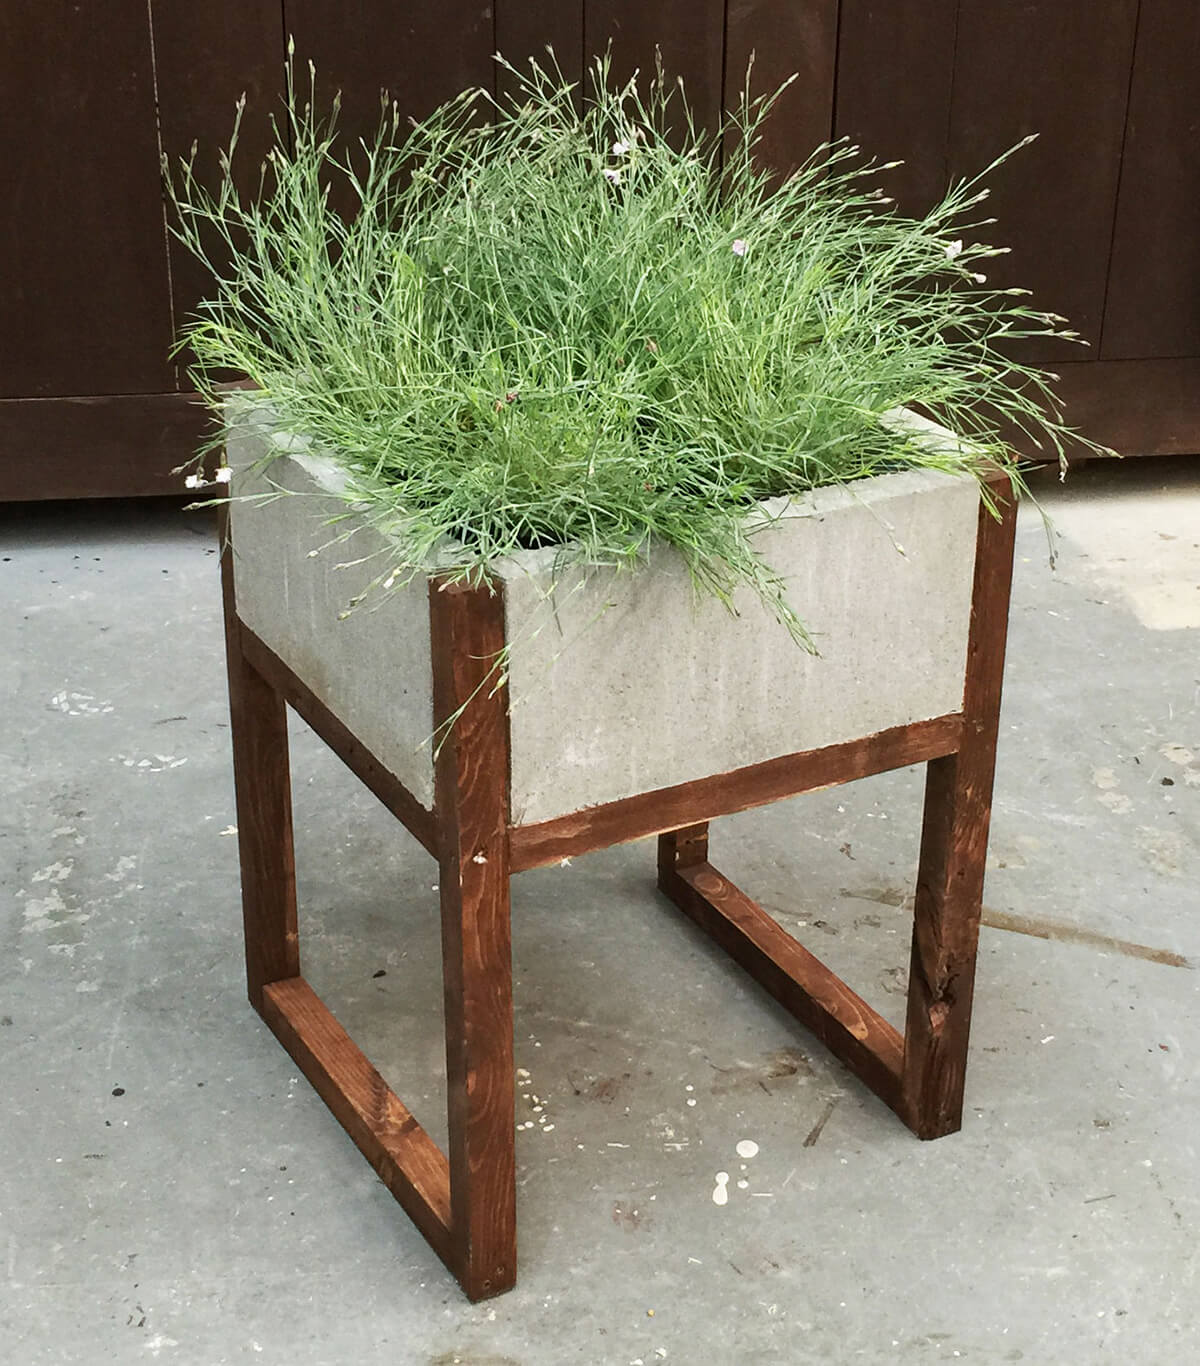 Diy Cement Planters: 32 Best DIY Backyard Concrete Projects And Ideas For 2020